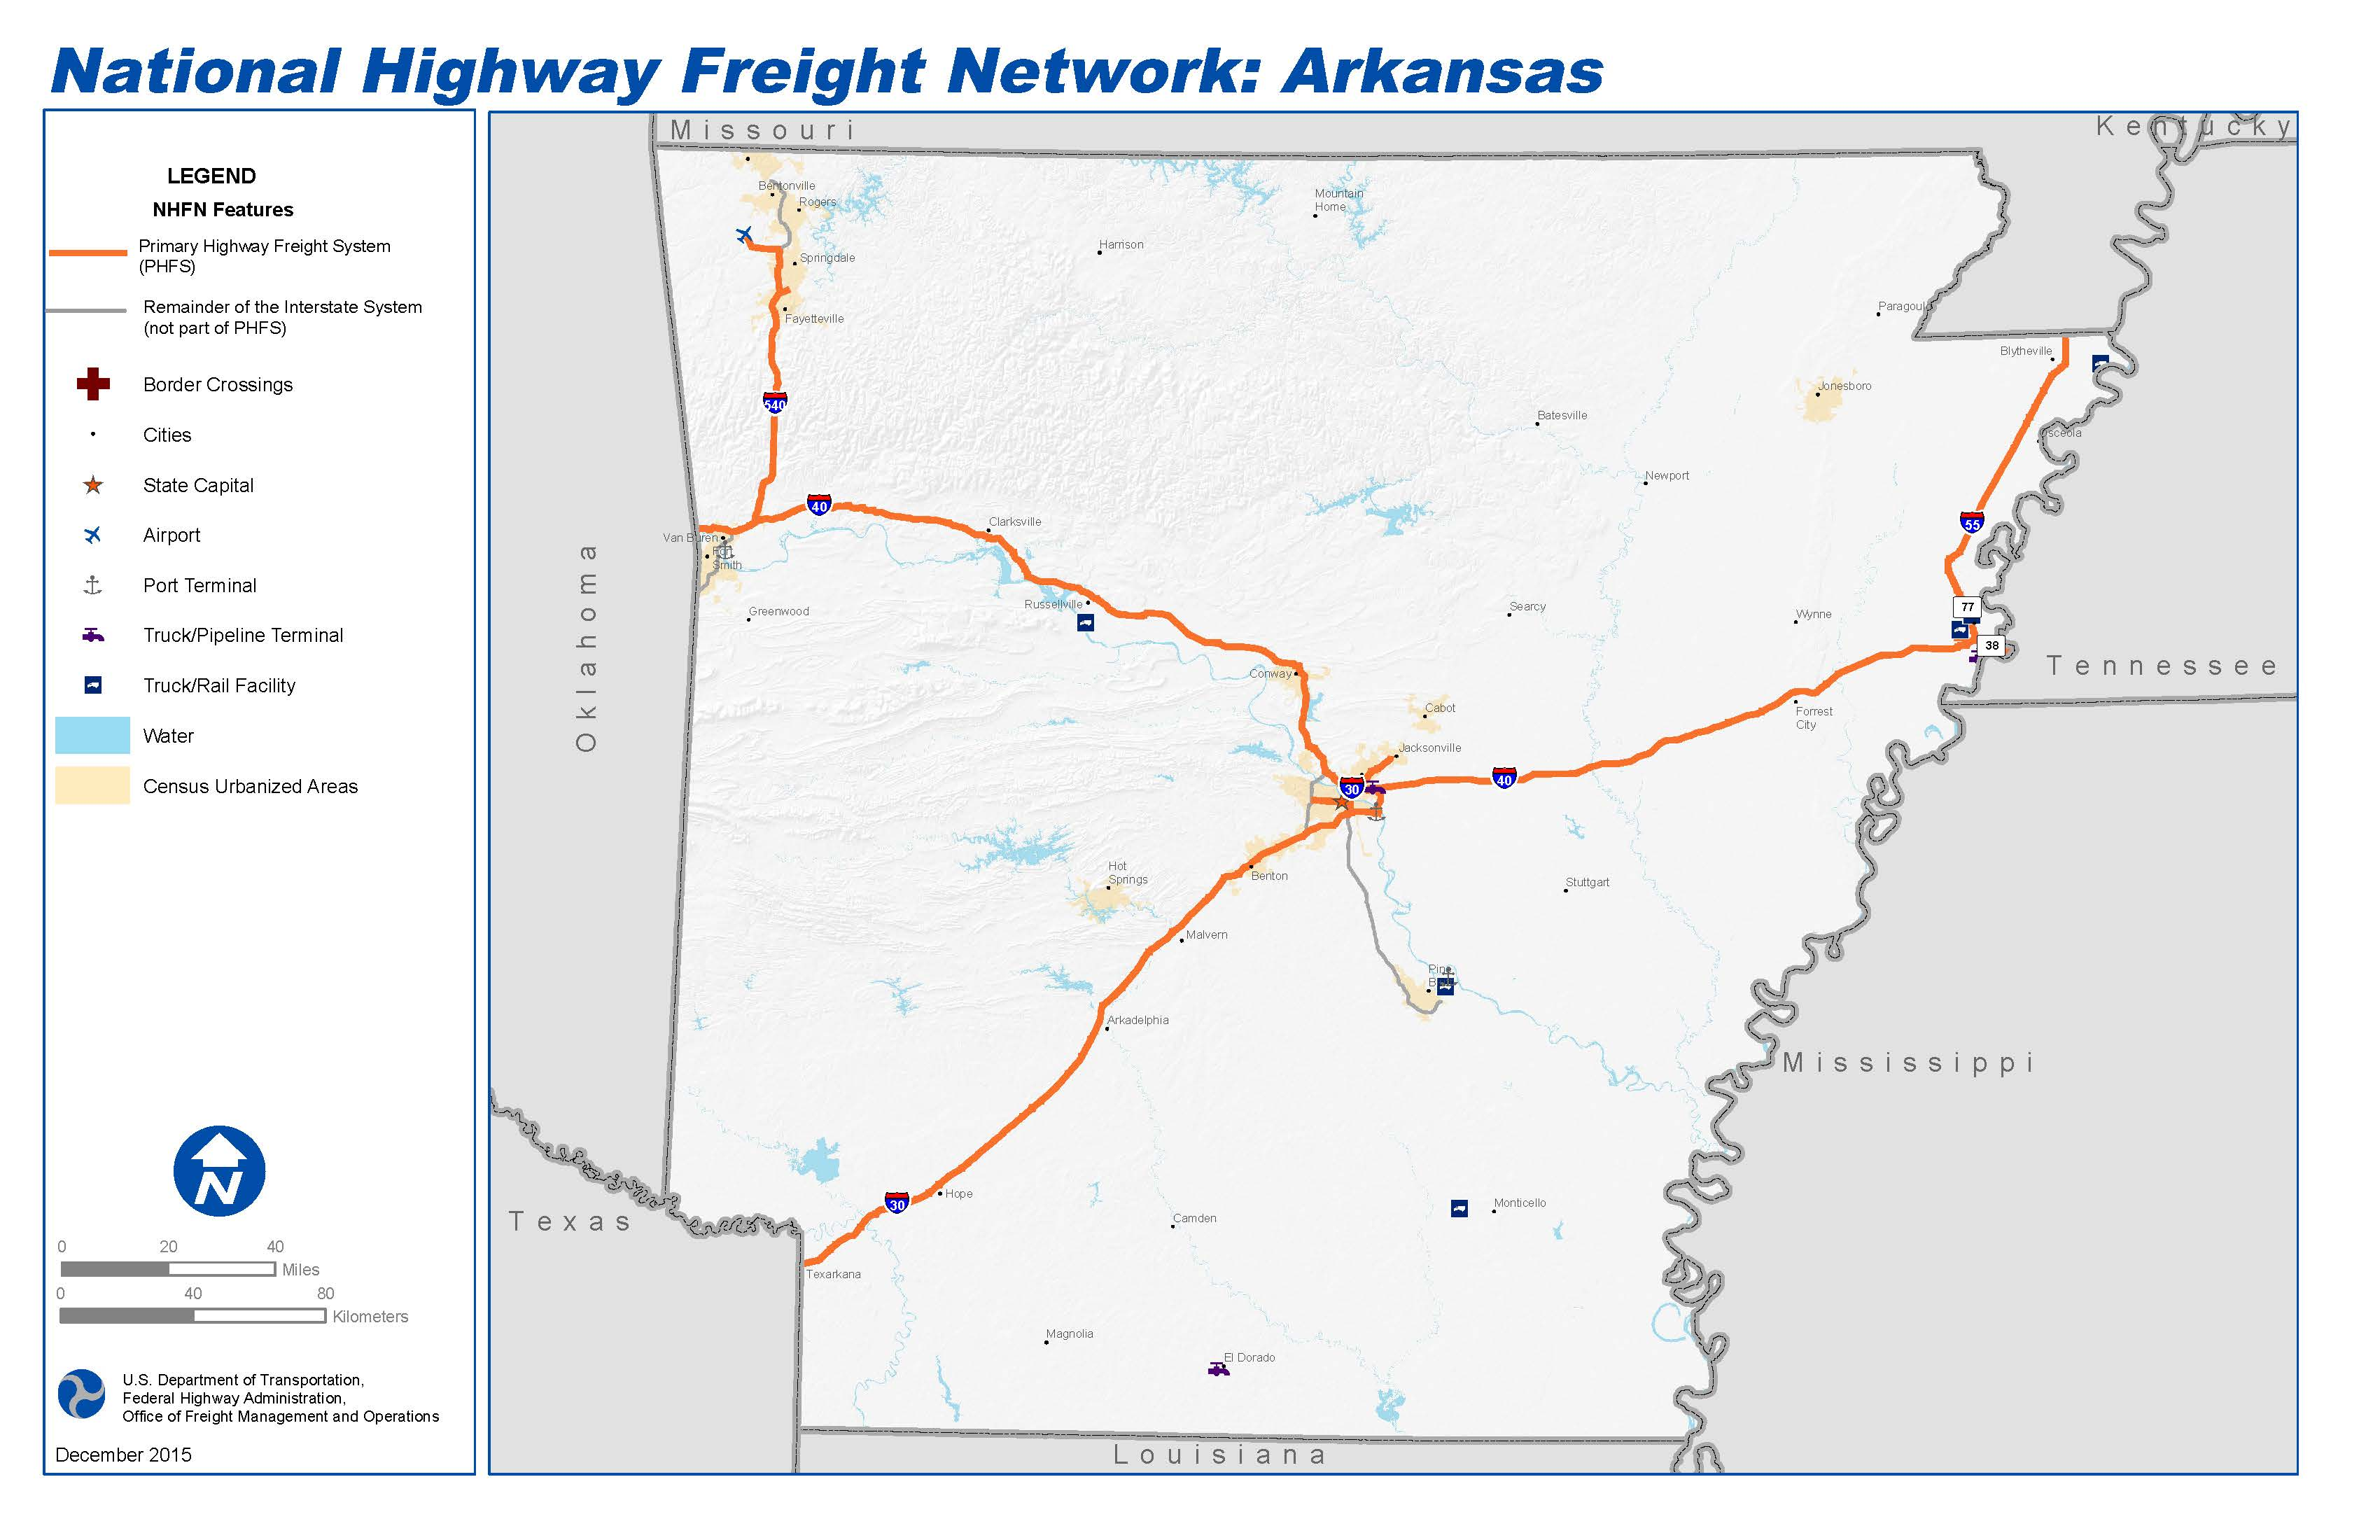 National Highway Freight Network Map And Tables For Arkansas - Arkansas highway map